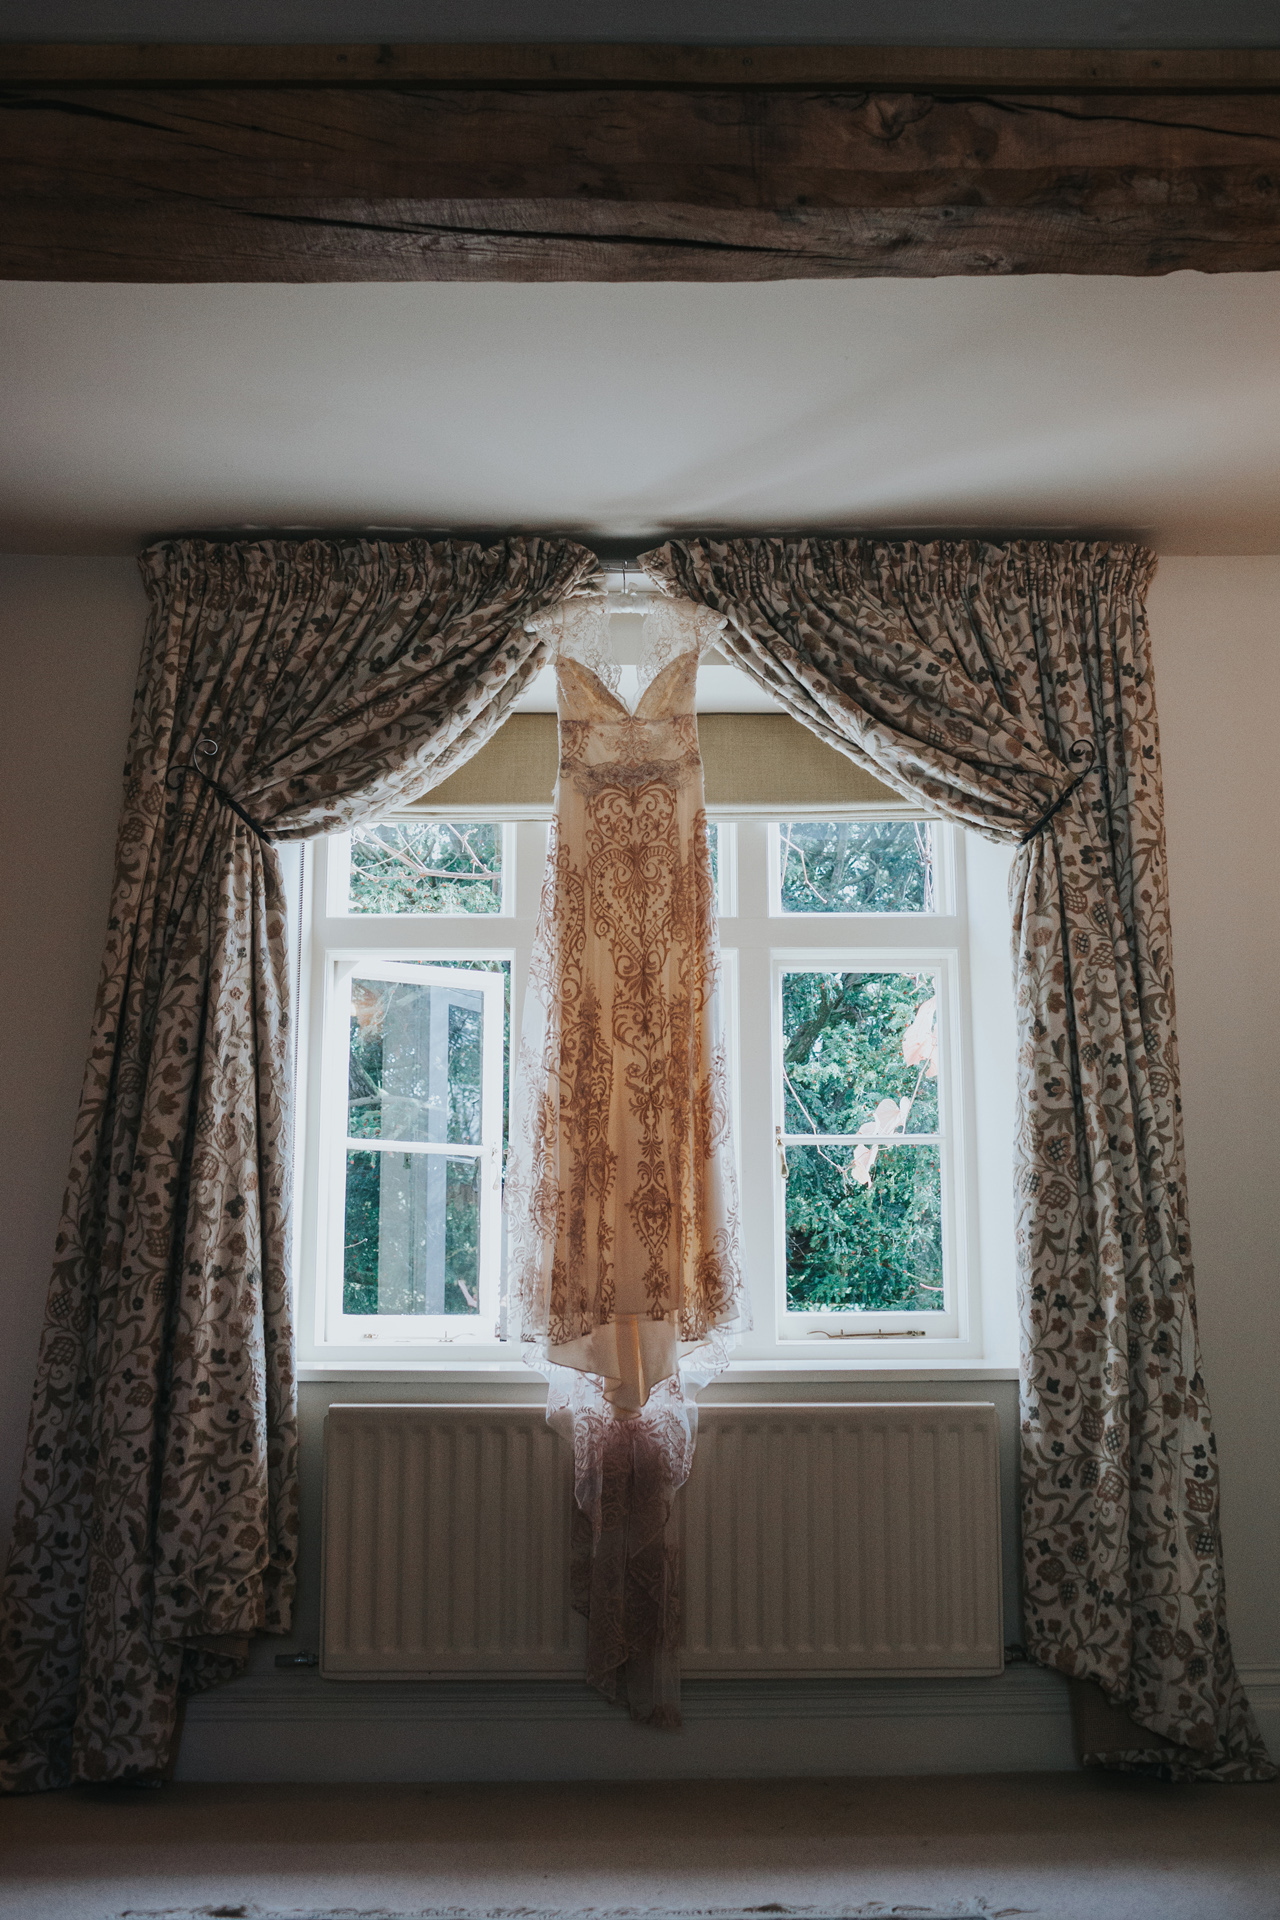 The dress hanging from the curtain rail at Dewsall Court.